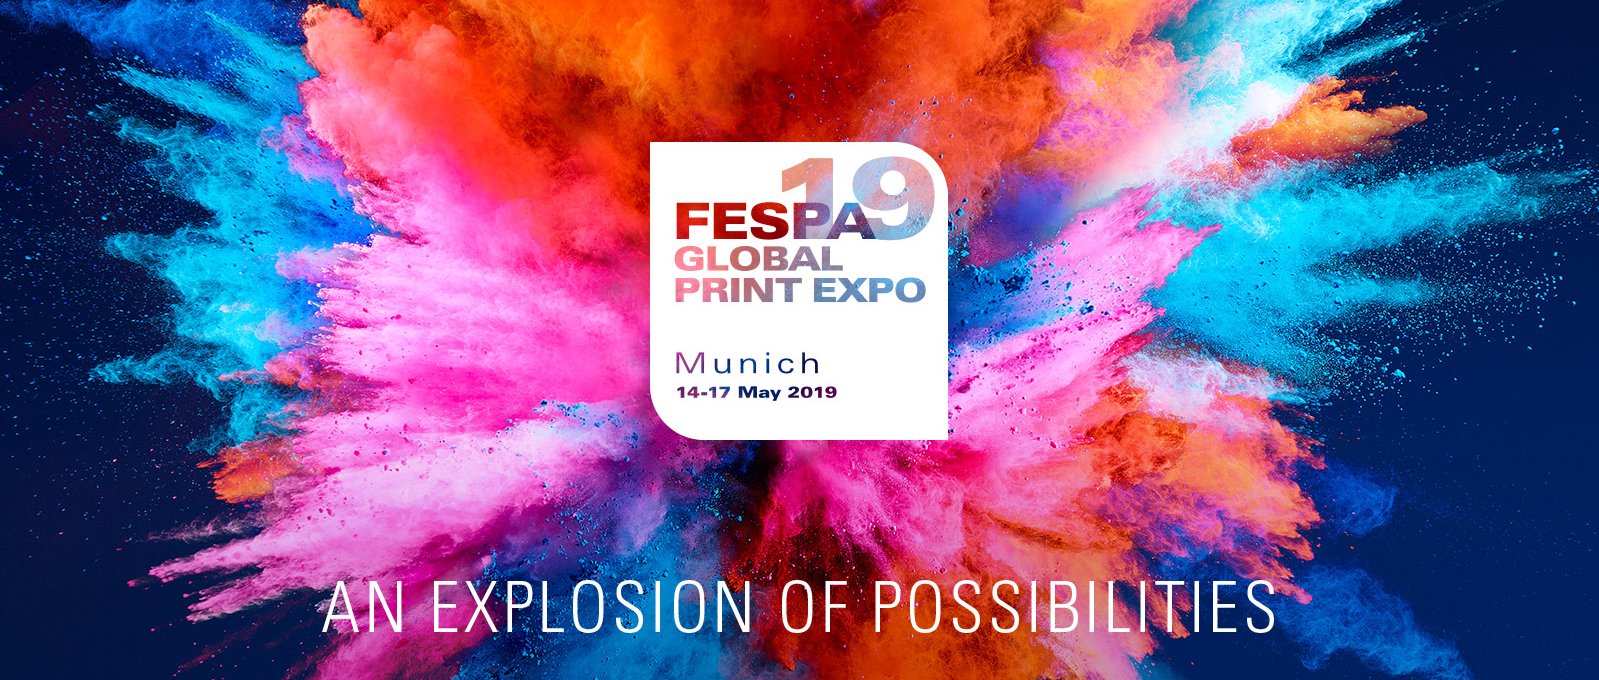 FESPA-2019-Header-Main-1599-680